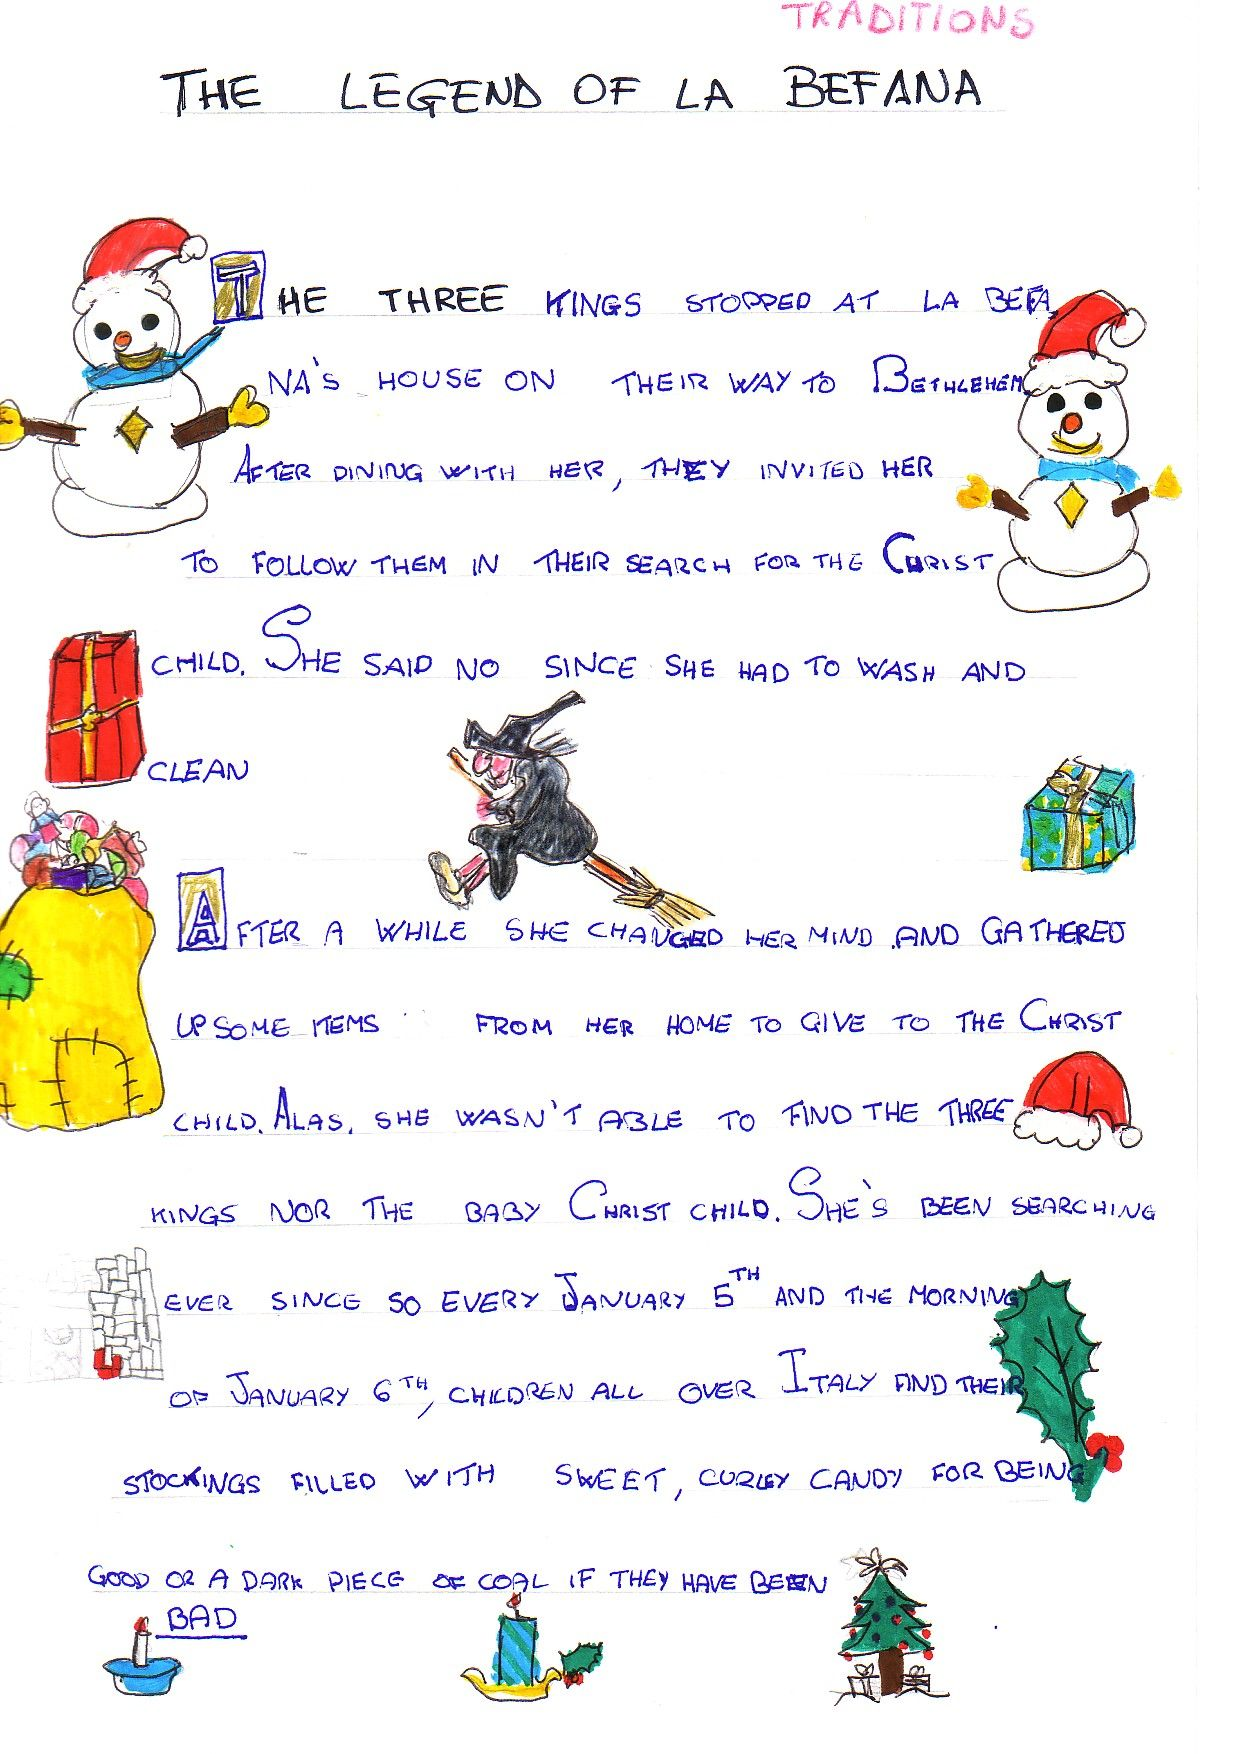 An Adorable Version Of The Story Of La Befana Of Course